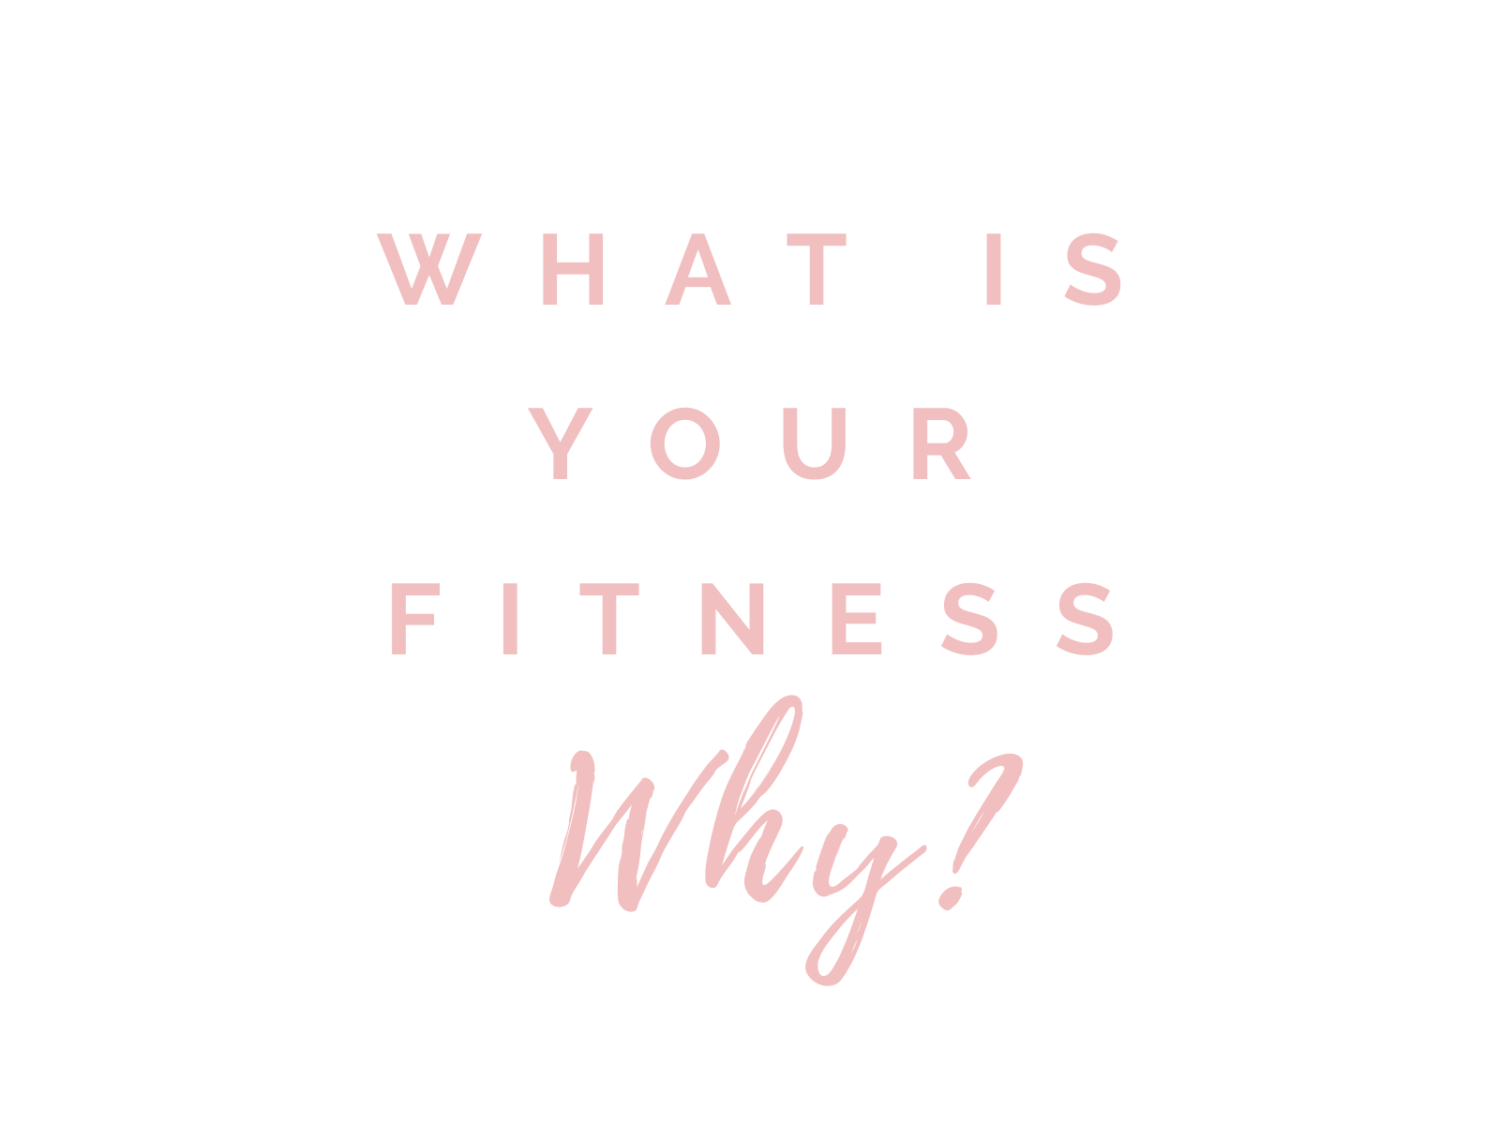 What Is Your Fitness Why?